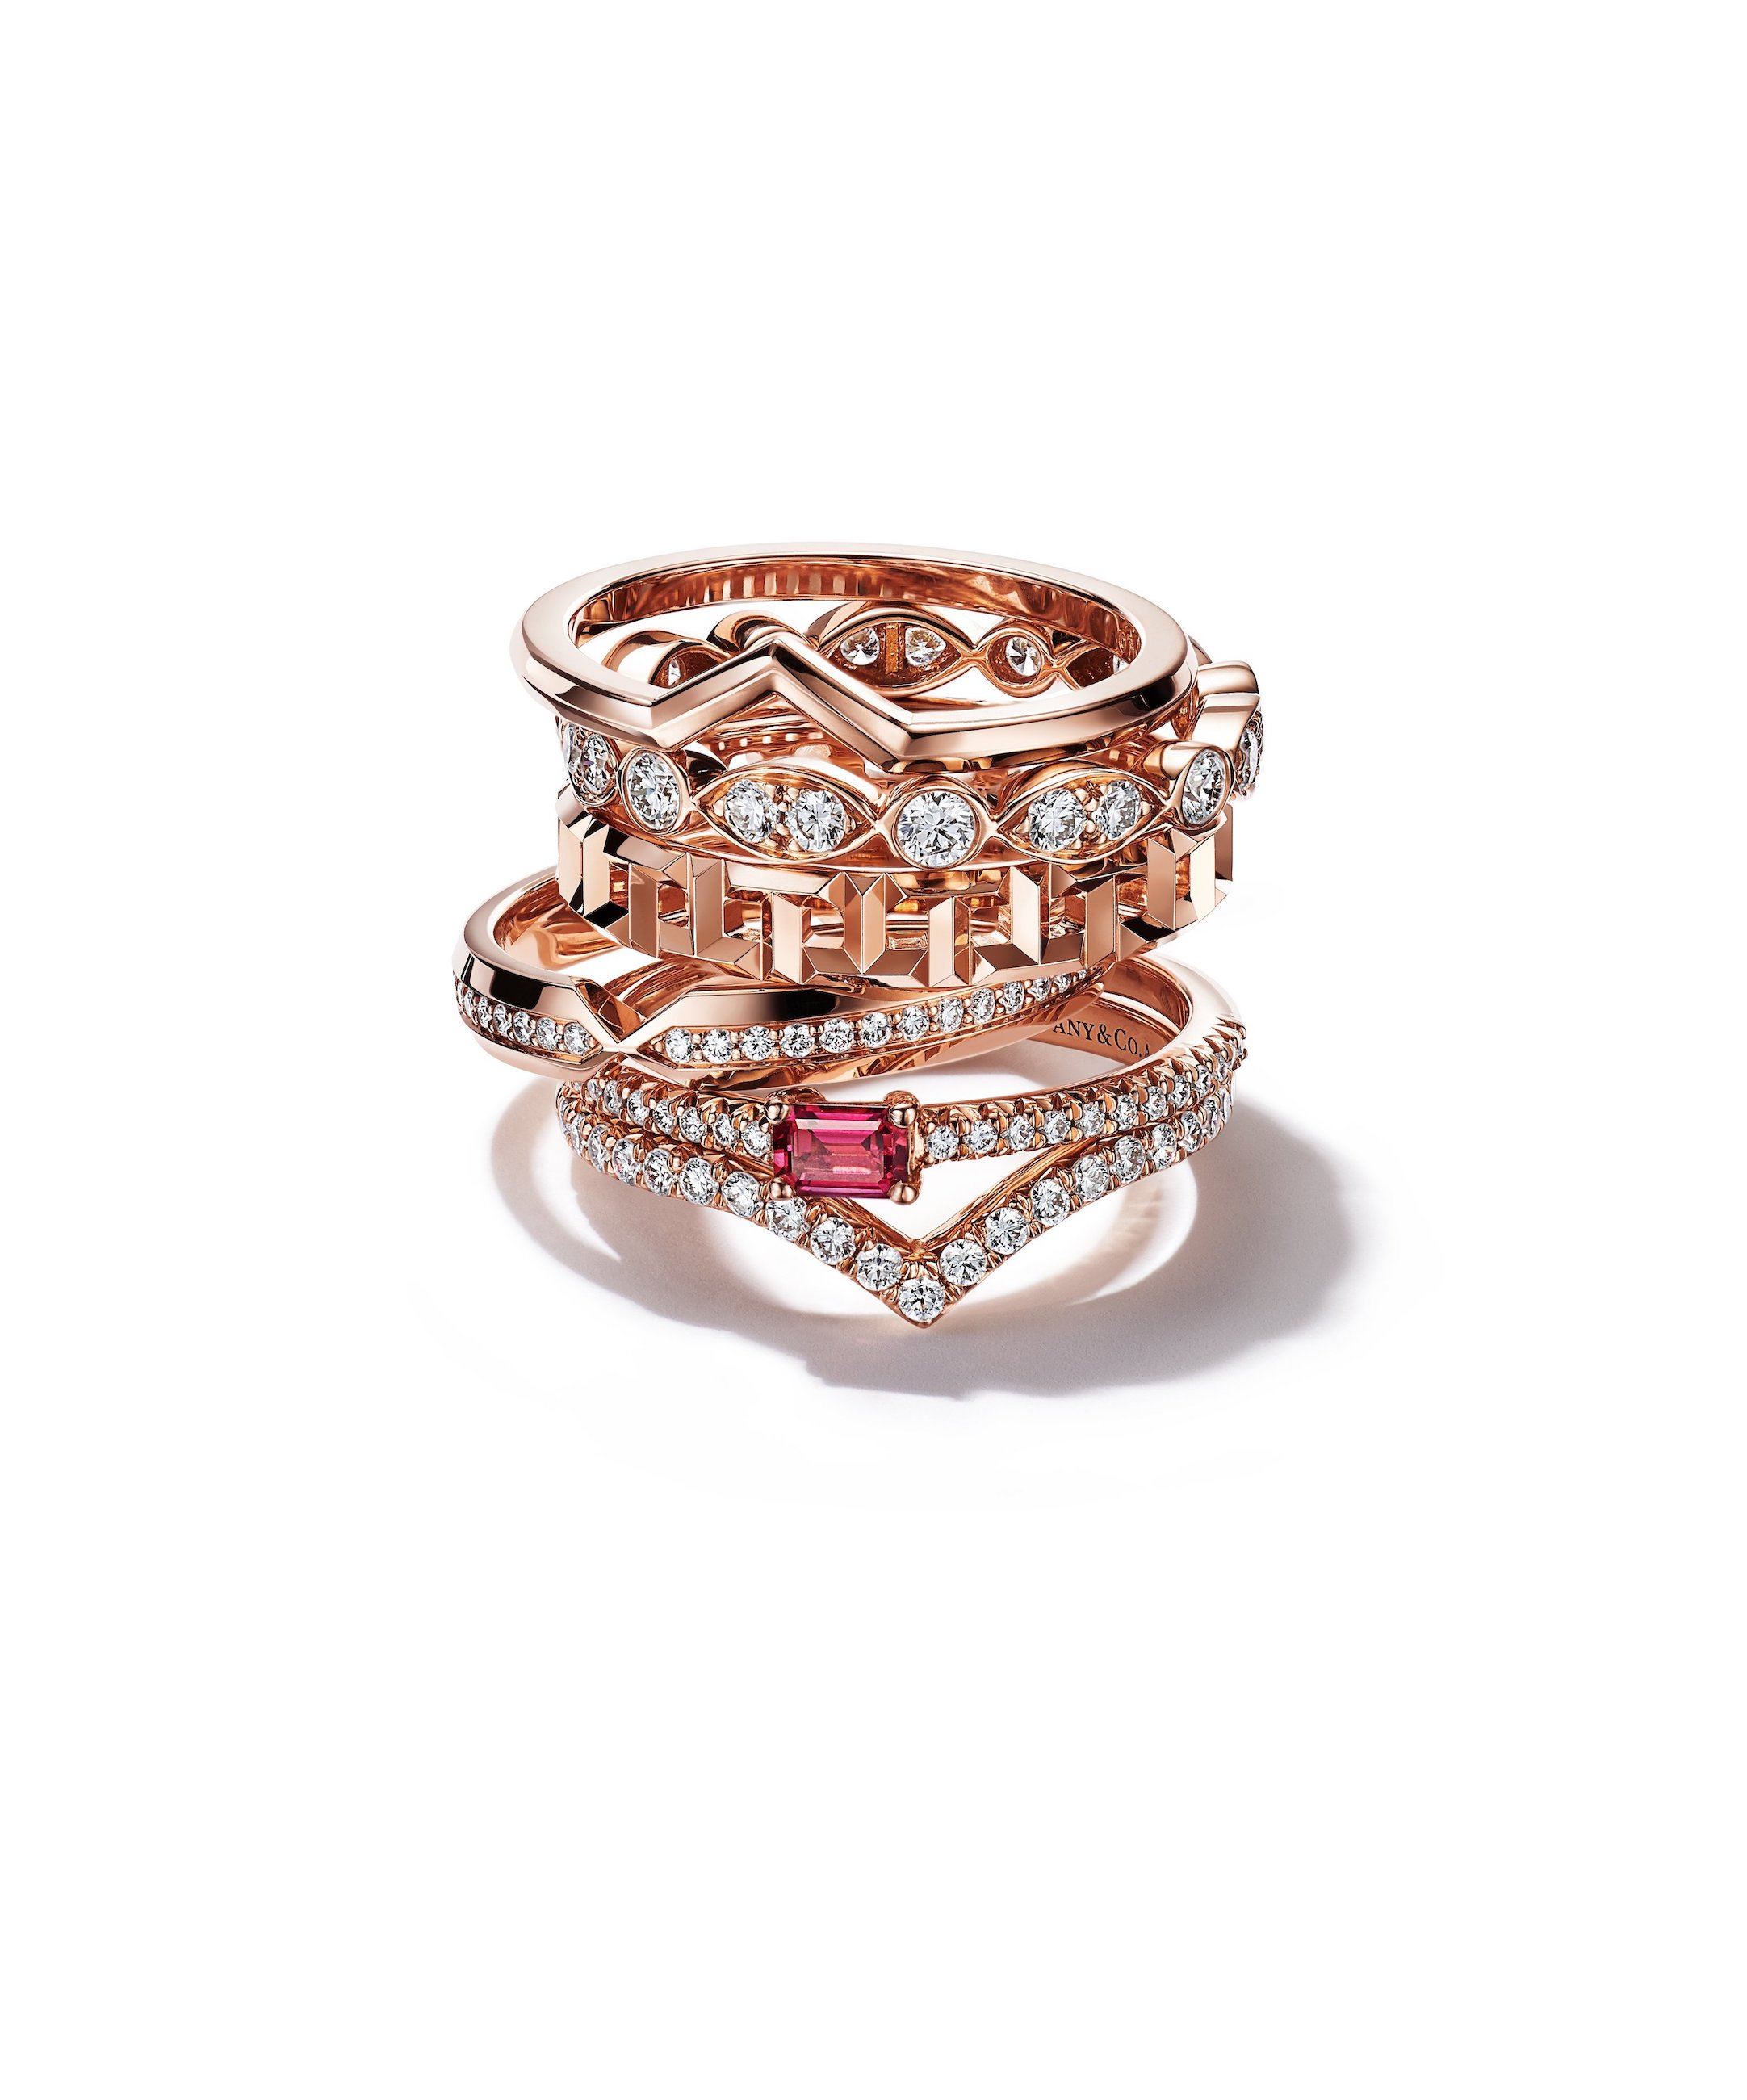 Tiffany & Co. diamond and ruby rings in rose gold